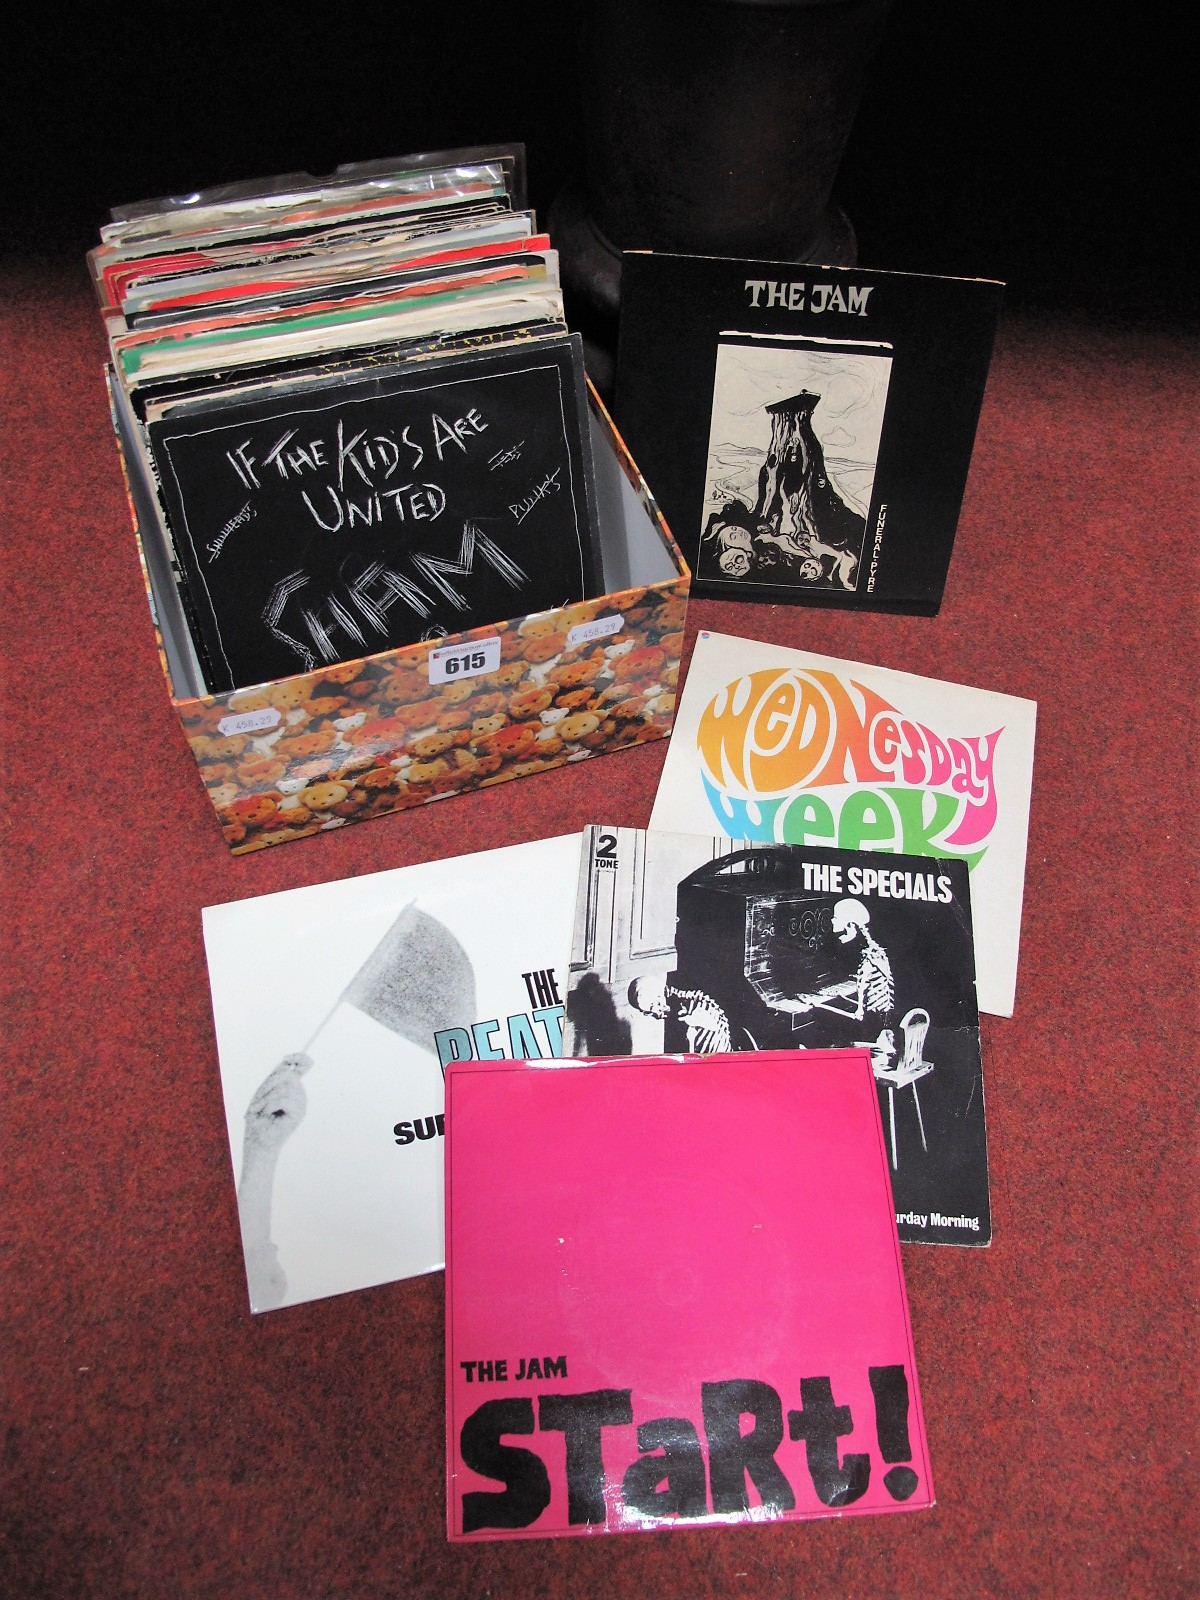 """Lot 615 - Punk/New Wave/Indie/Mod Revival - 7"""" Singles, to include Specials, The Jam, Undertones, Damned,"""